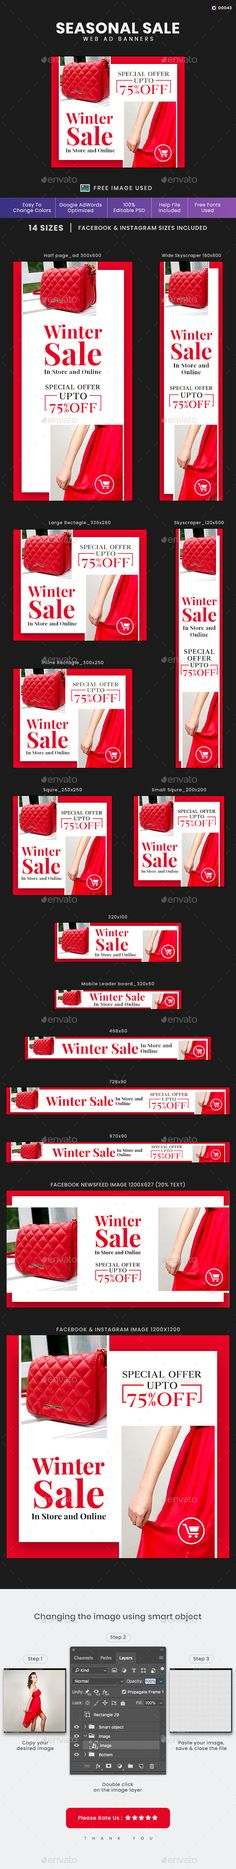 Buy Seasonal Sale Web Banner Set by Kimp_io on GraphicRiver. Promote your Products and services with this great looking Banner Set. Muse Widgets, Facebook Ad Size, Fashion Banner, Cool Themes, Drupal, Banner Template, Psd Templates, Website Template, Web Banners